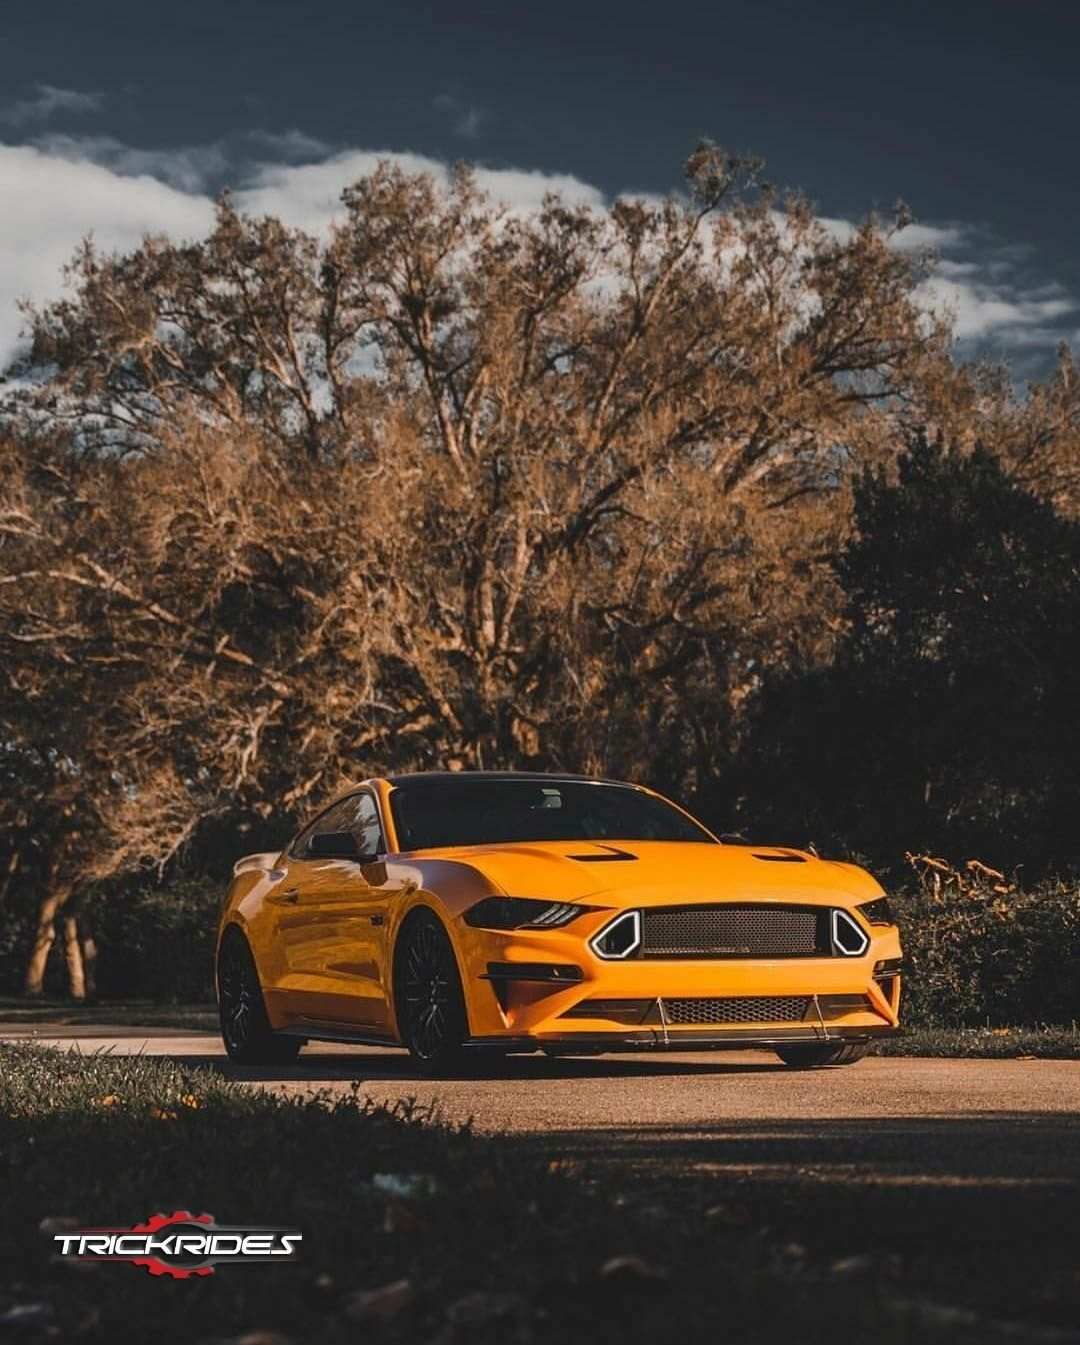 Ford Mustang Yellow Gtr Cars Hd Wallpapers Thewallpaper Net Gtr Car Car Hd Wallpaper Car Hd